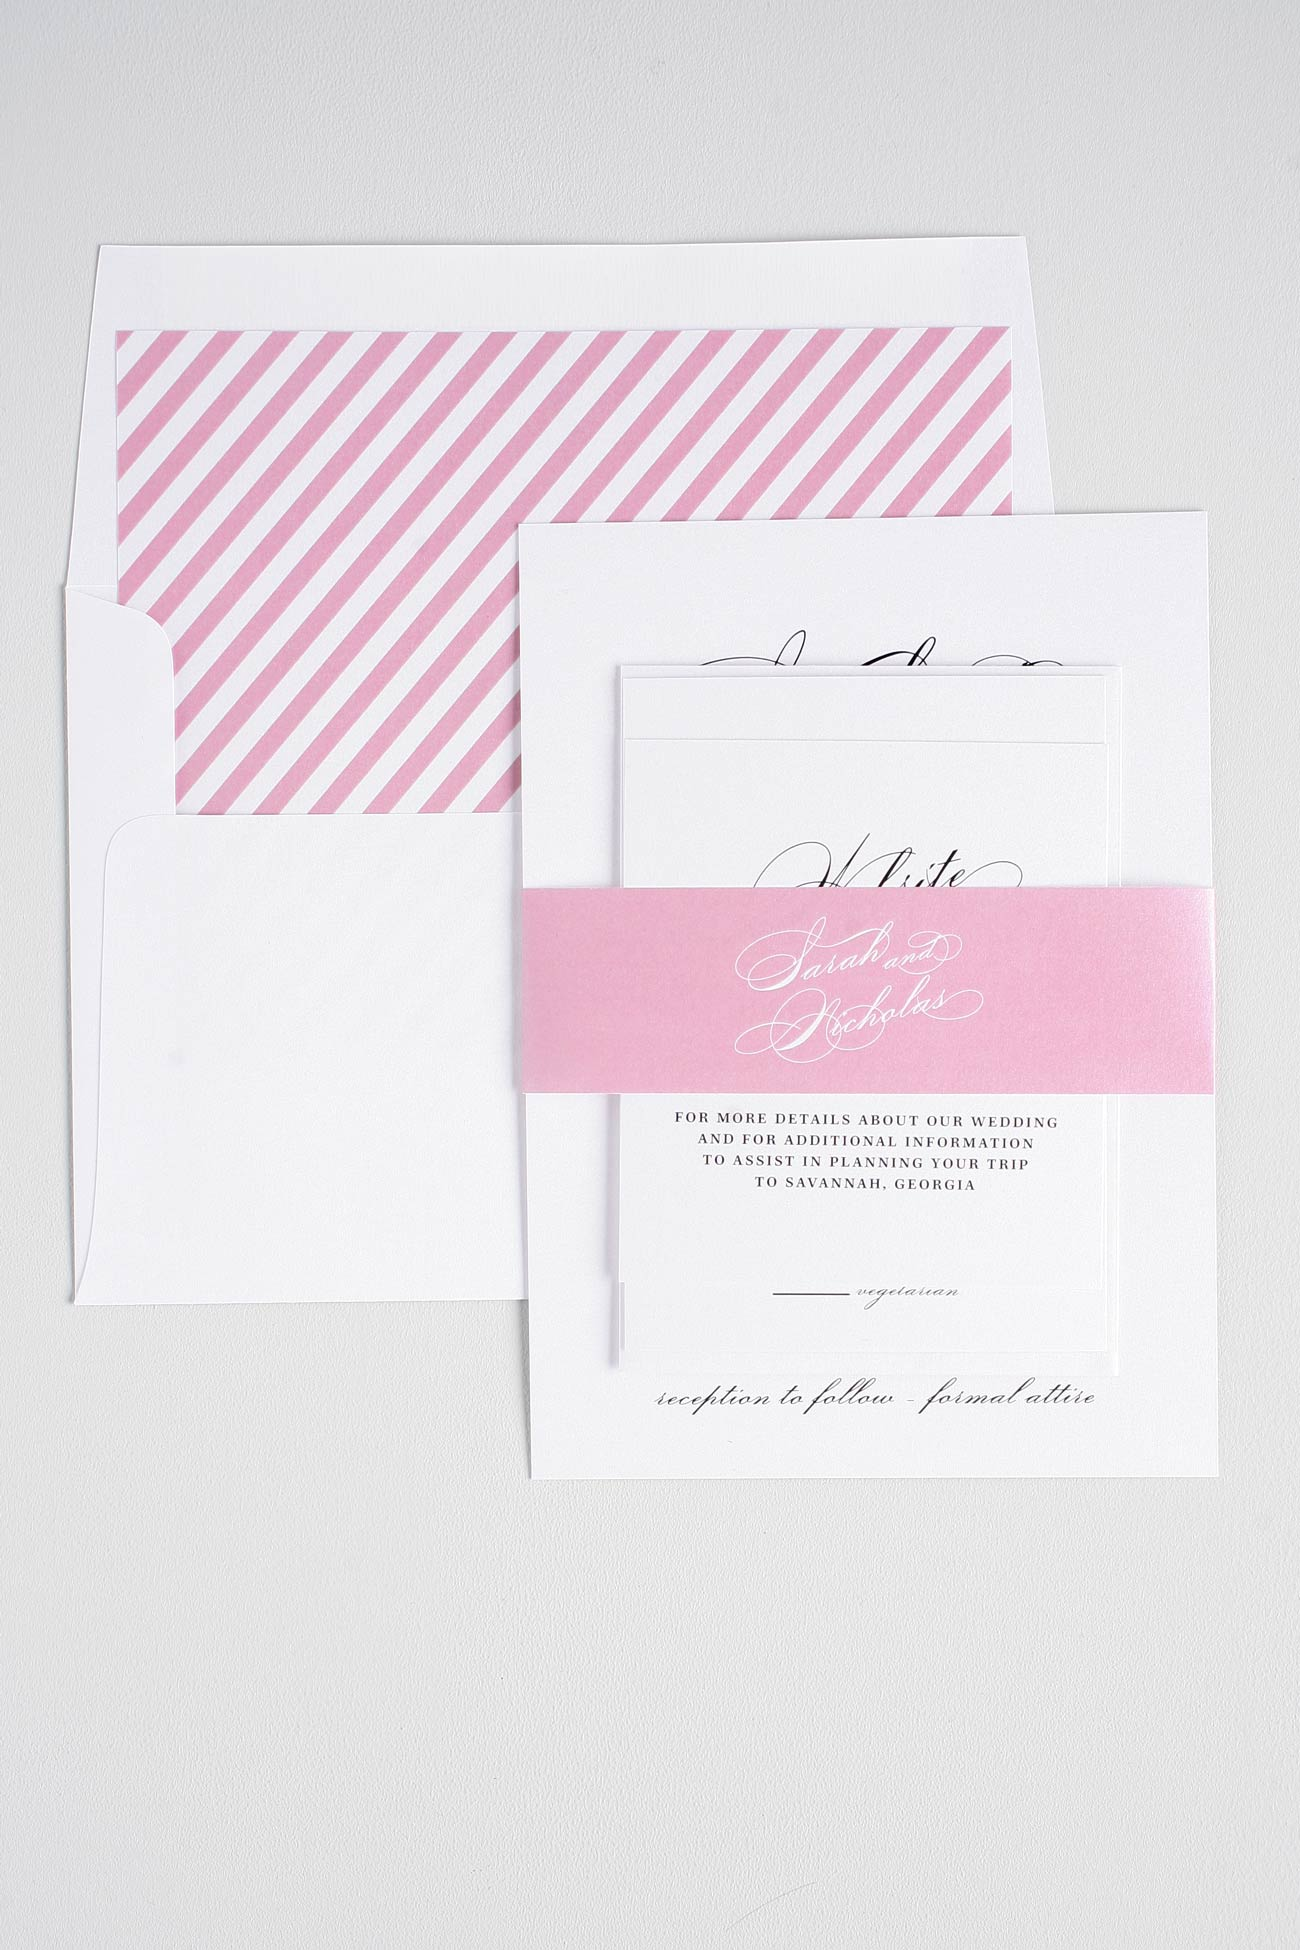 Vintage Glam wedding invitations in pink and black